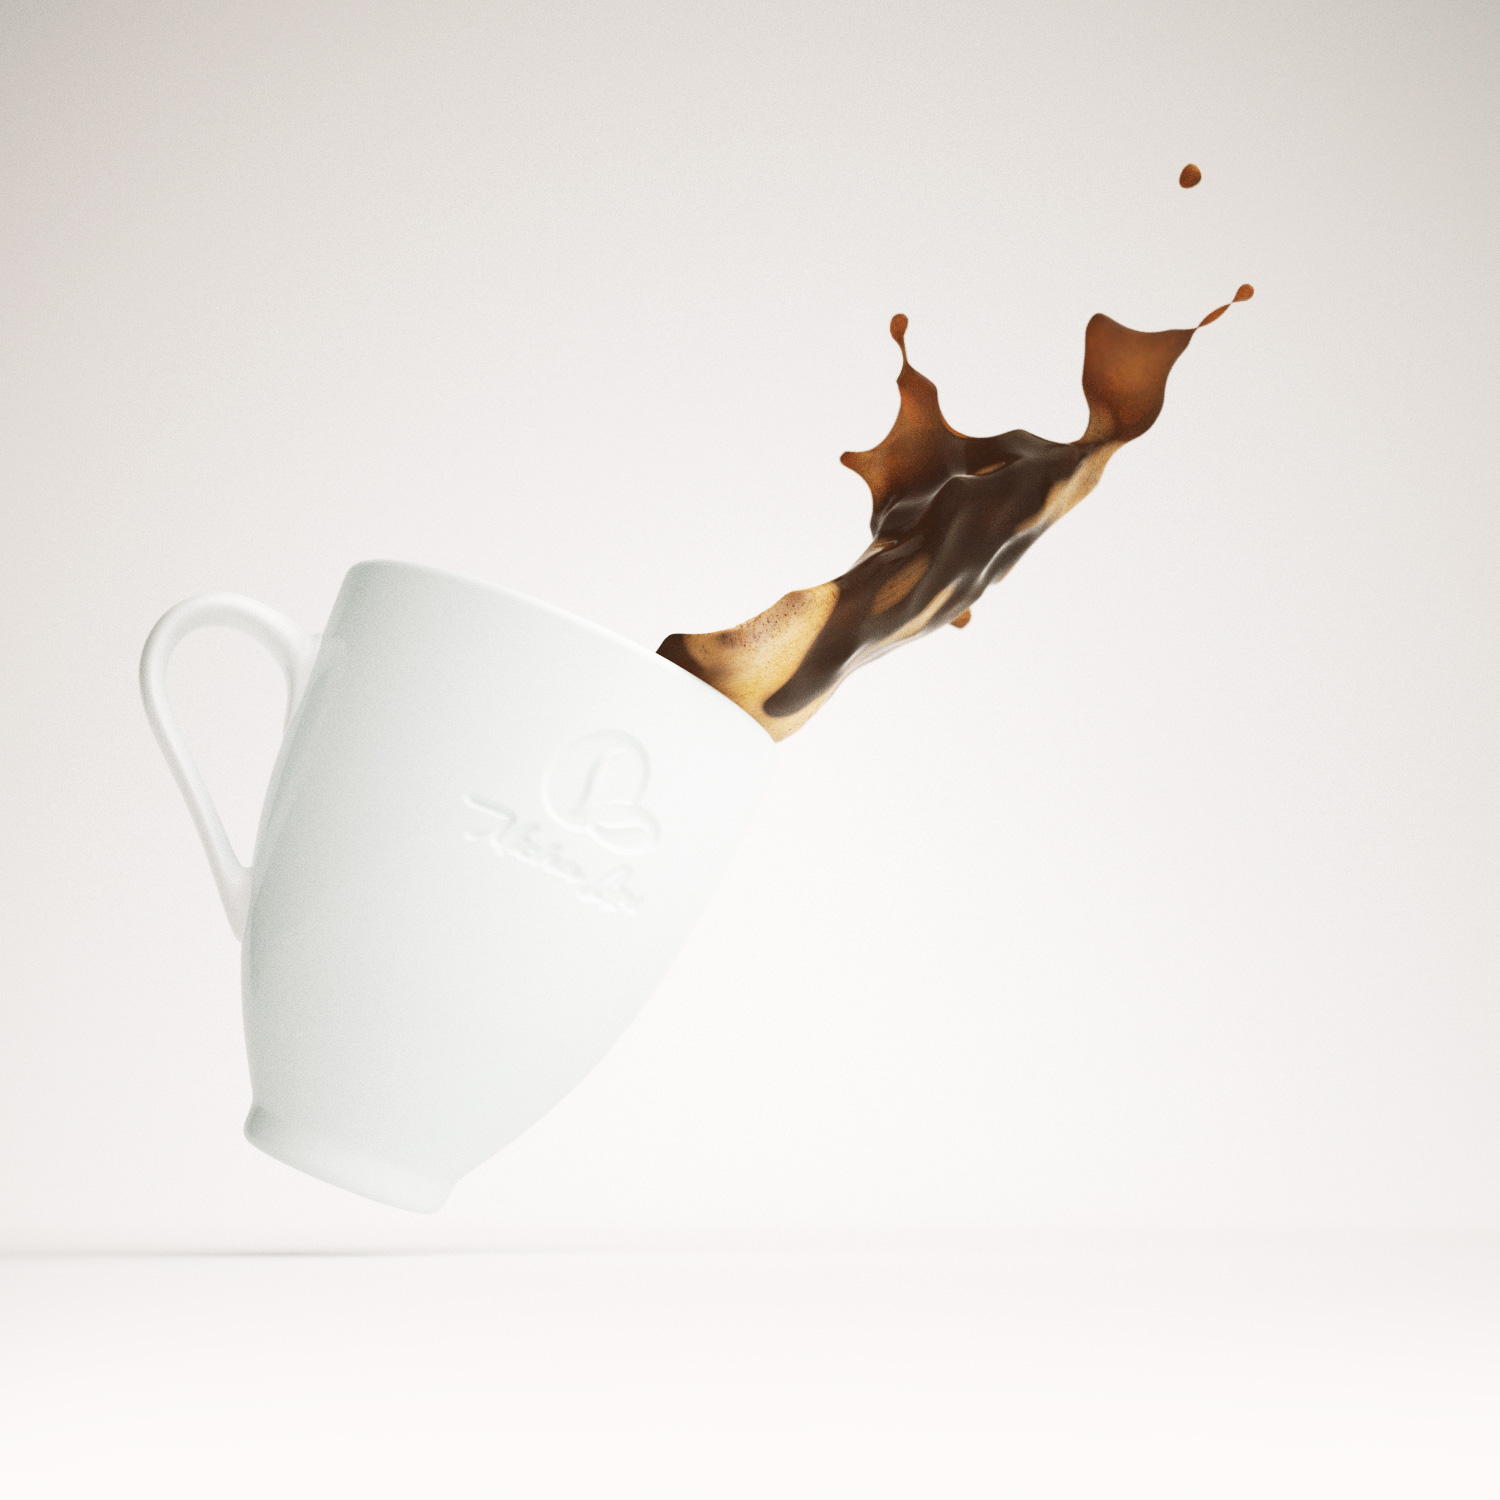 Rendering of a coffee mug spilling coffee